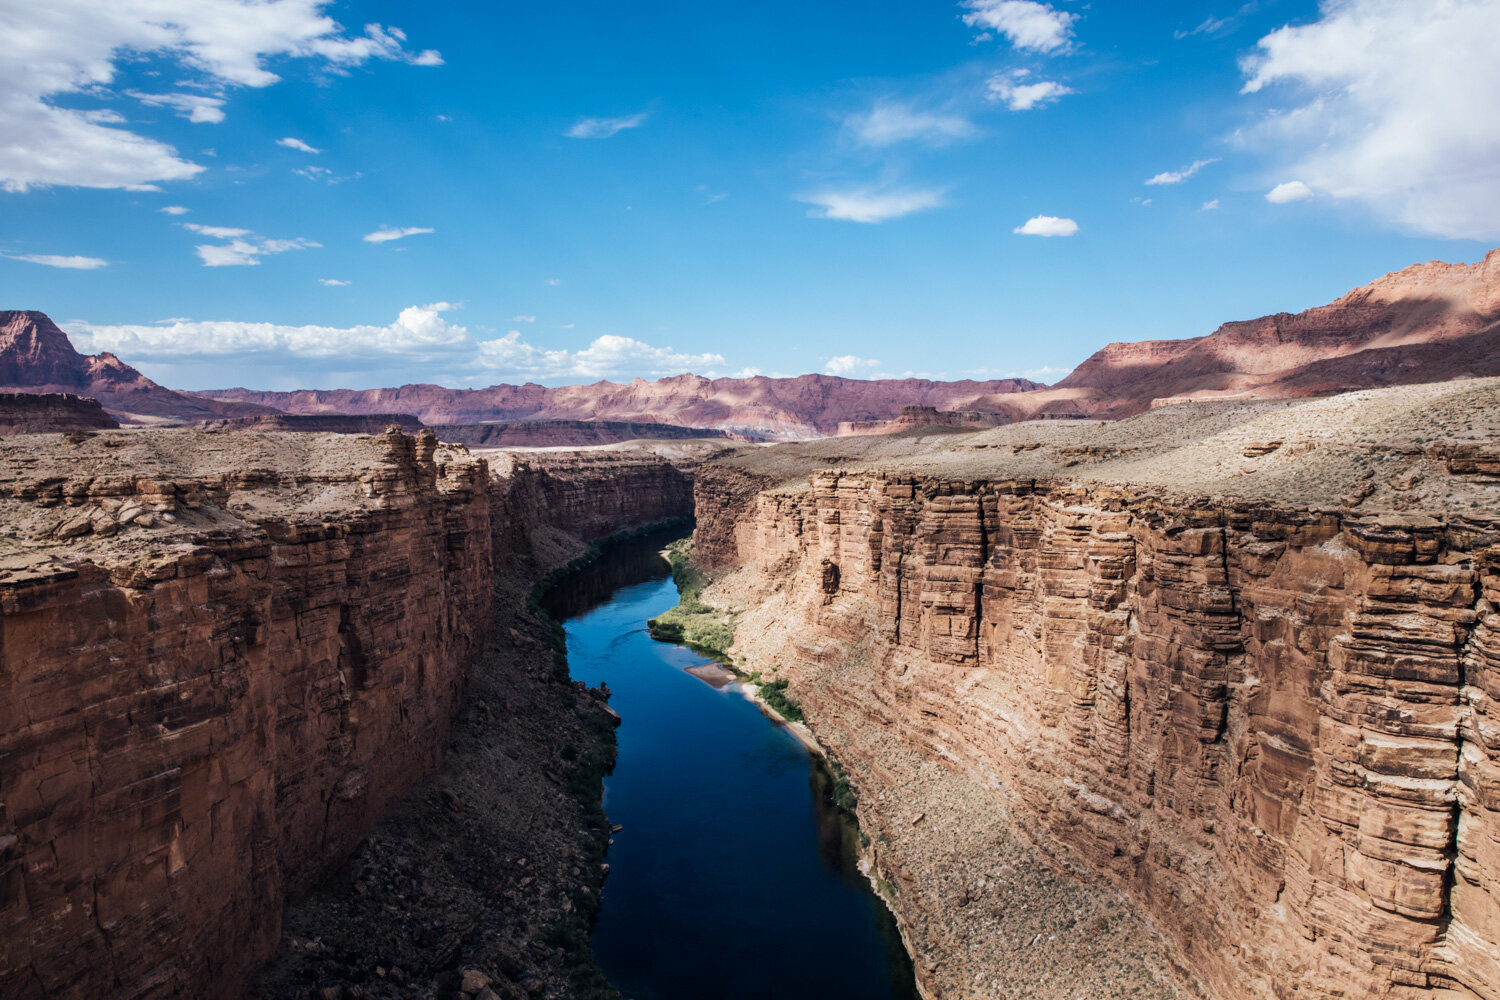 Ep. 30 | Our First Multi-Day Paddling Expedition - Marble Canyon, Arizona